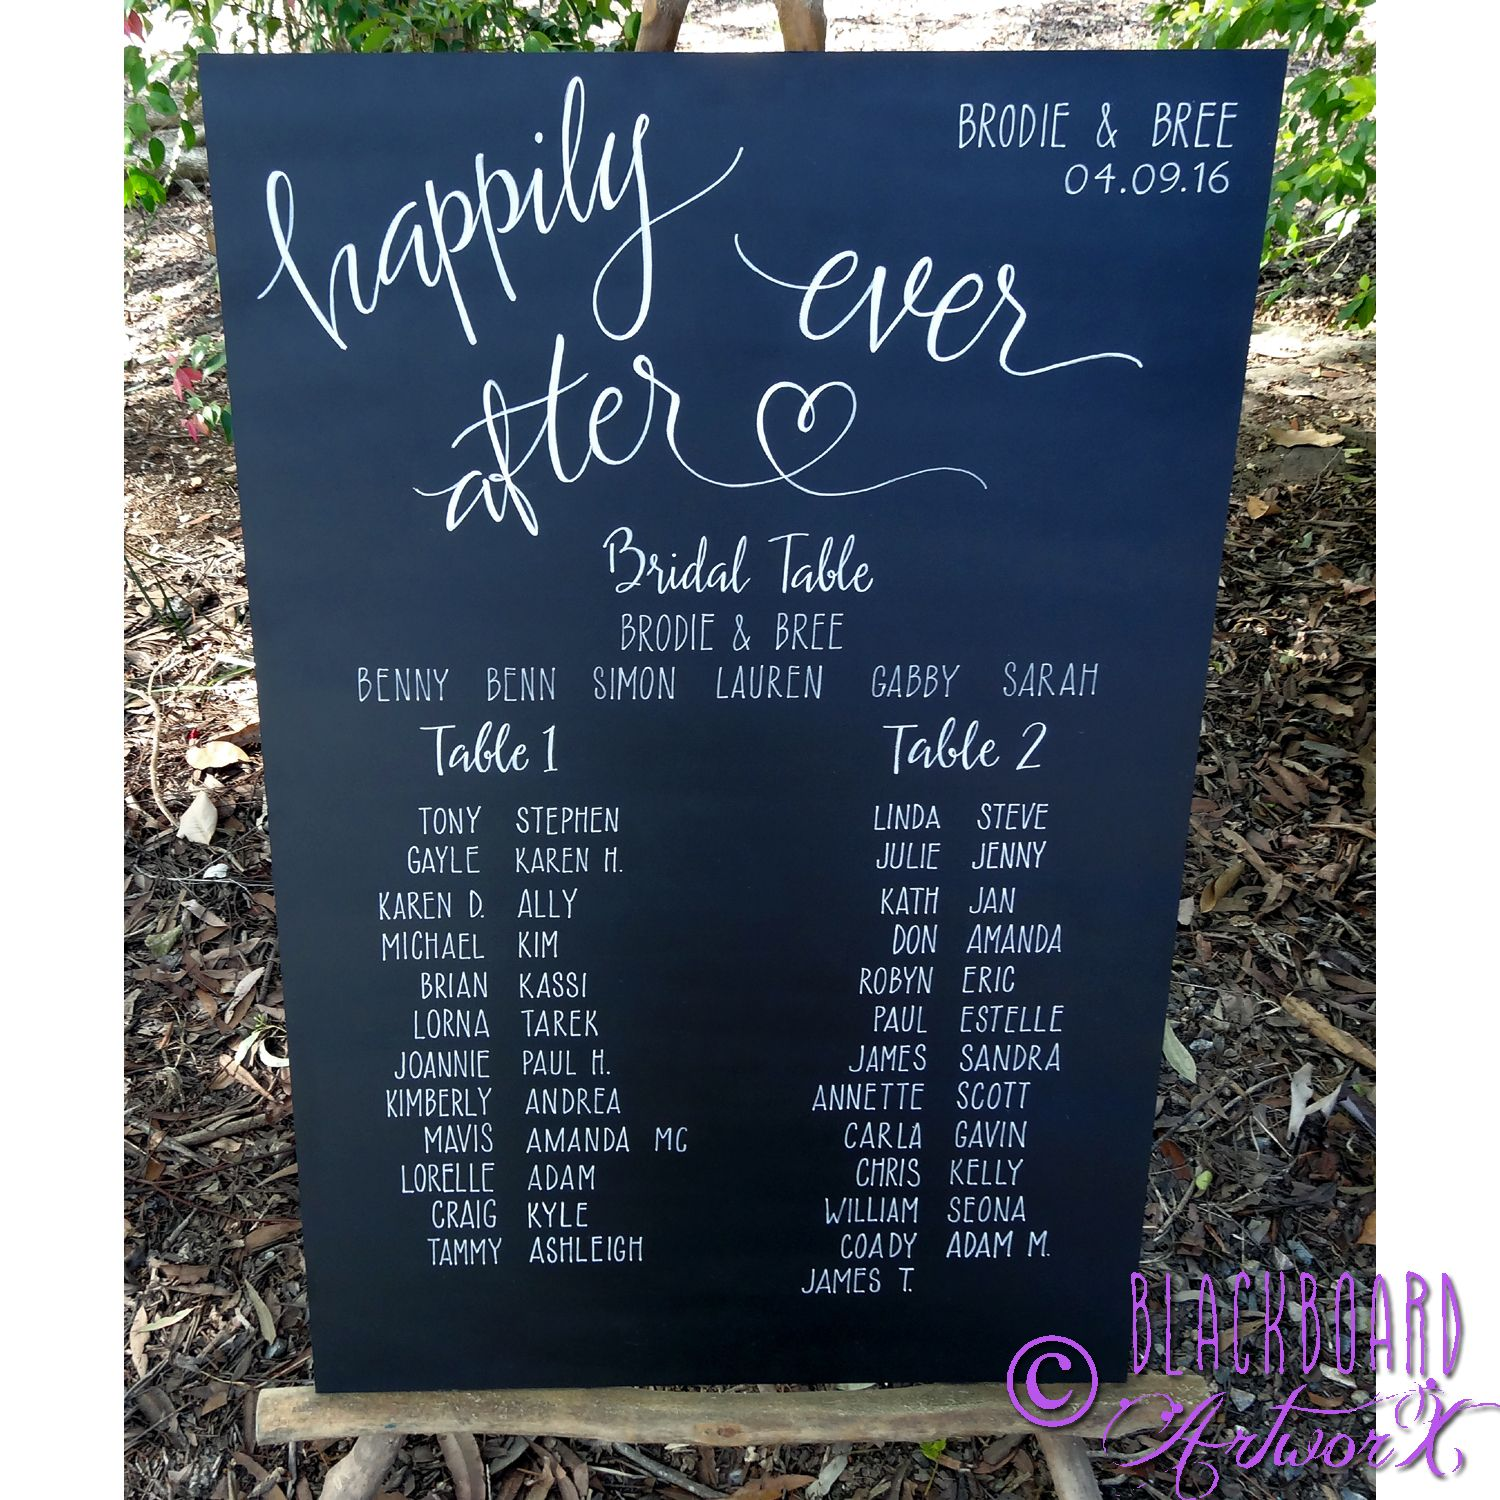 Happily ever after wedding seating plan